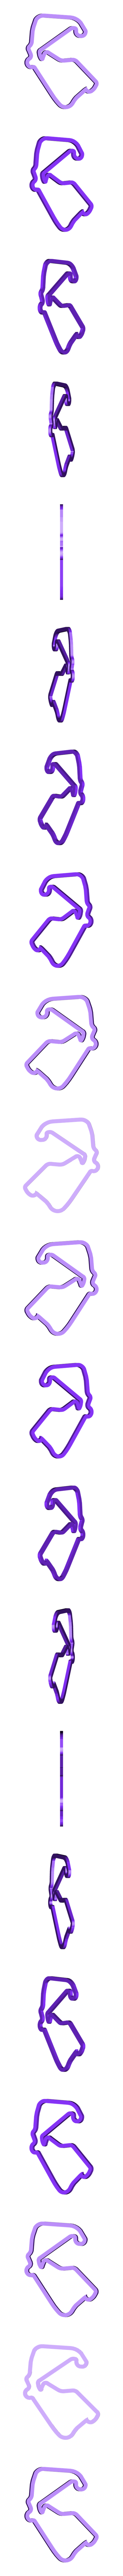 Silverstone.STL Download free STL file All MotoGP tracks • Object to 3D print, Guillaume_975